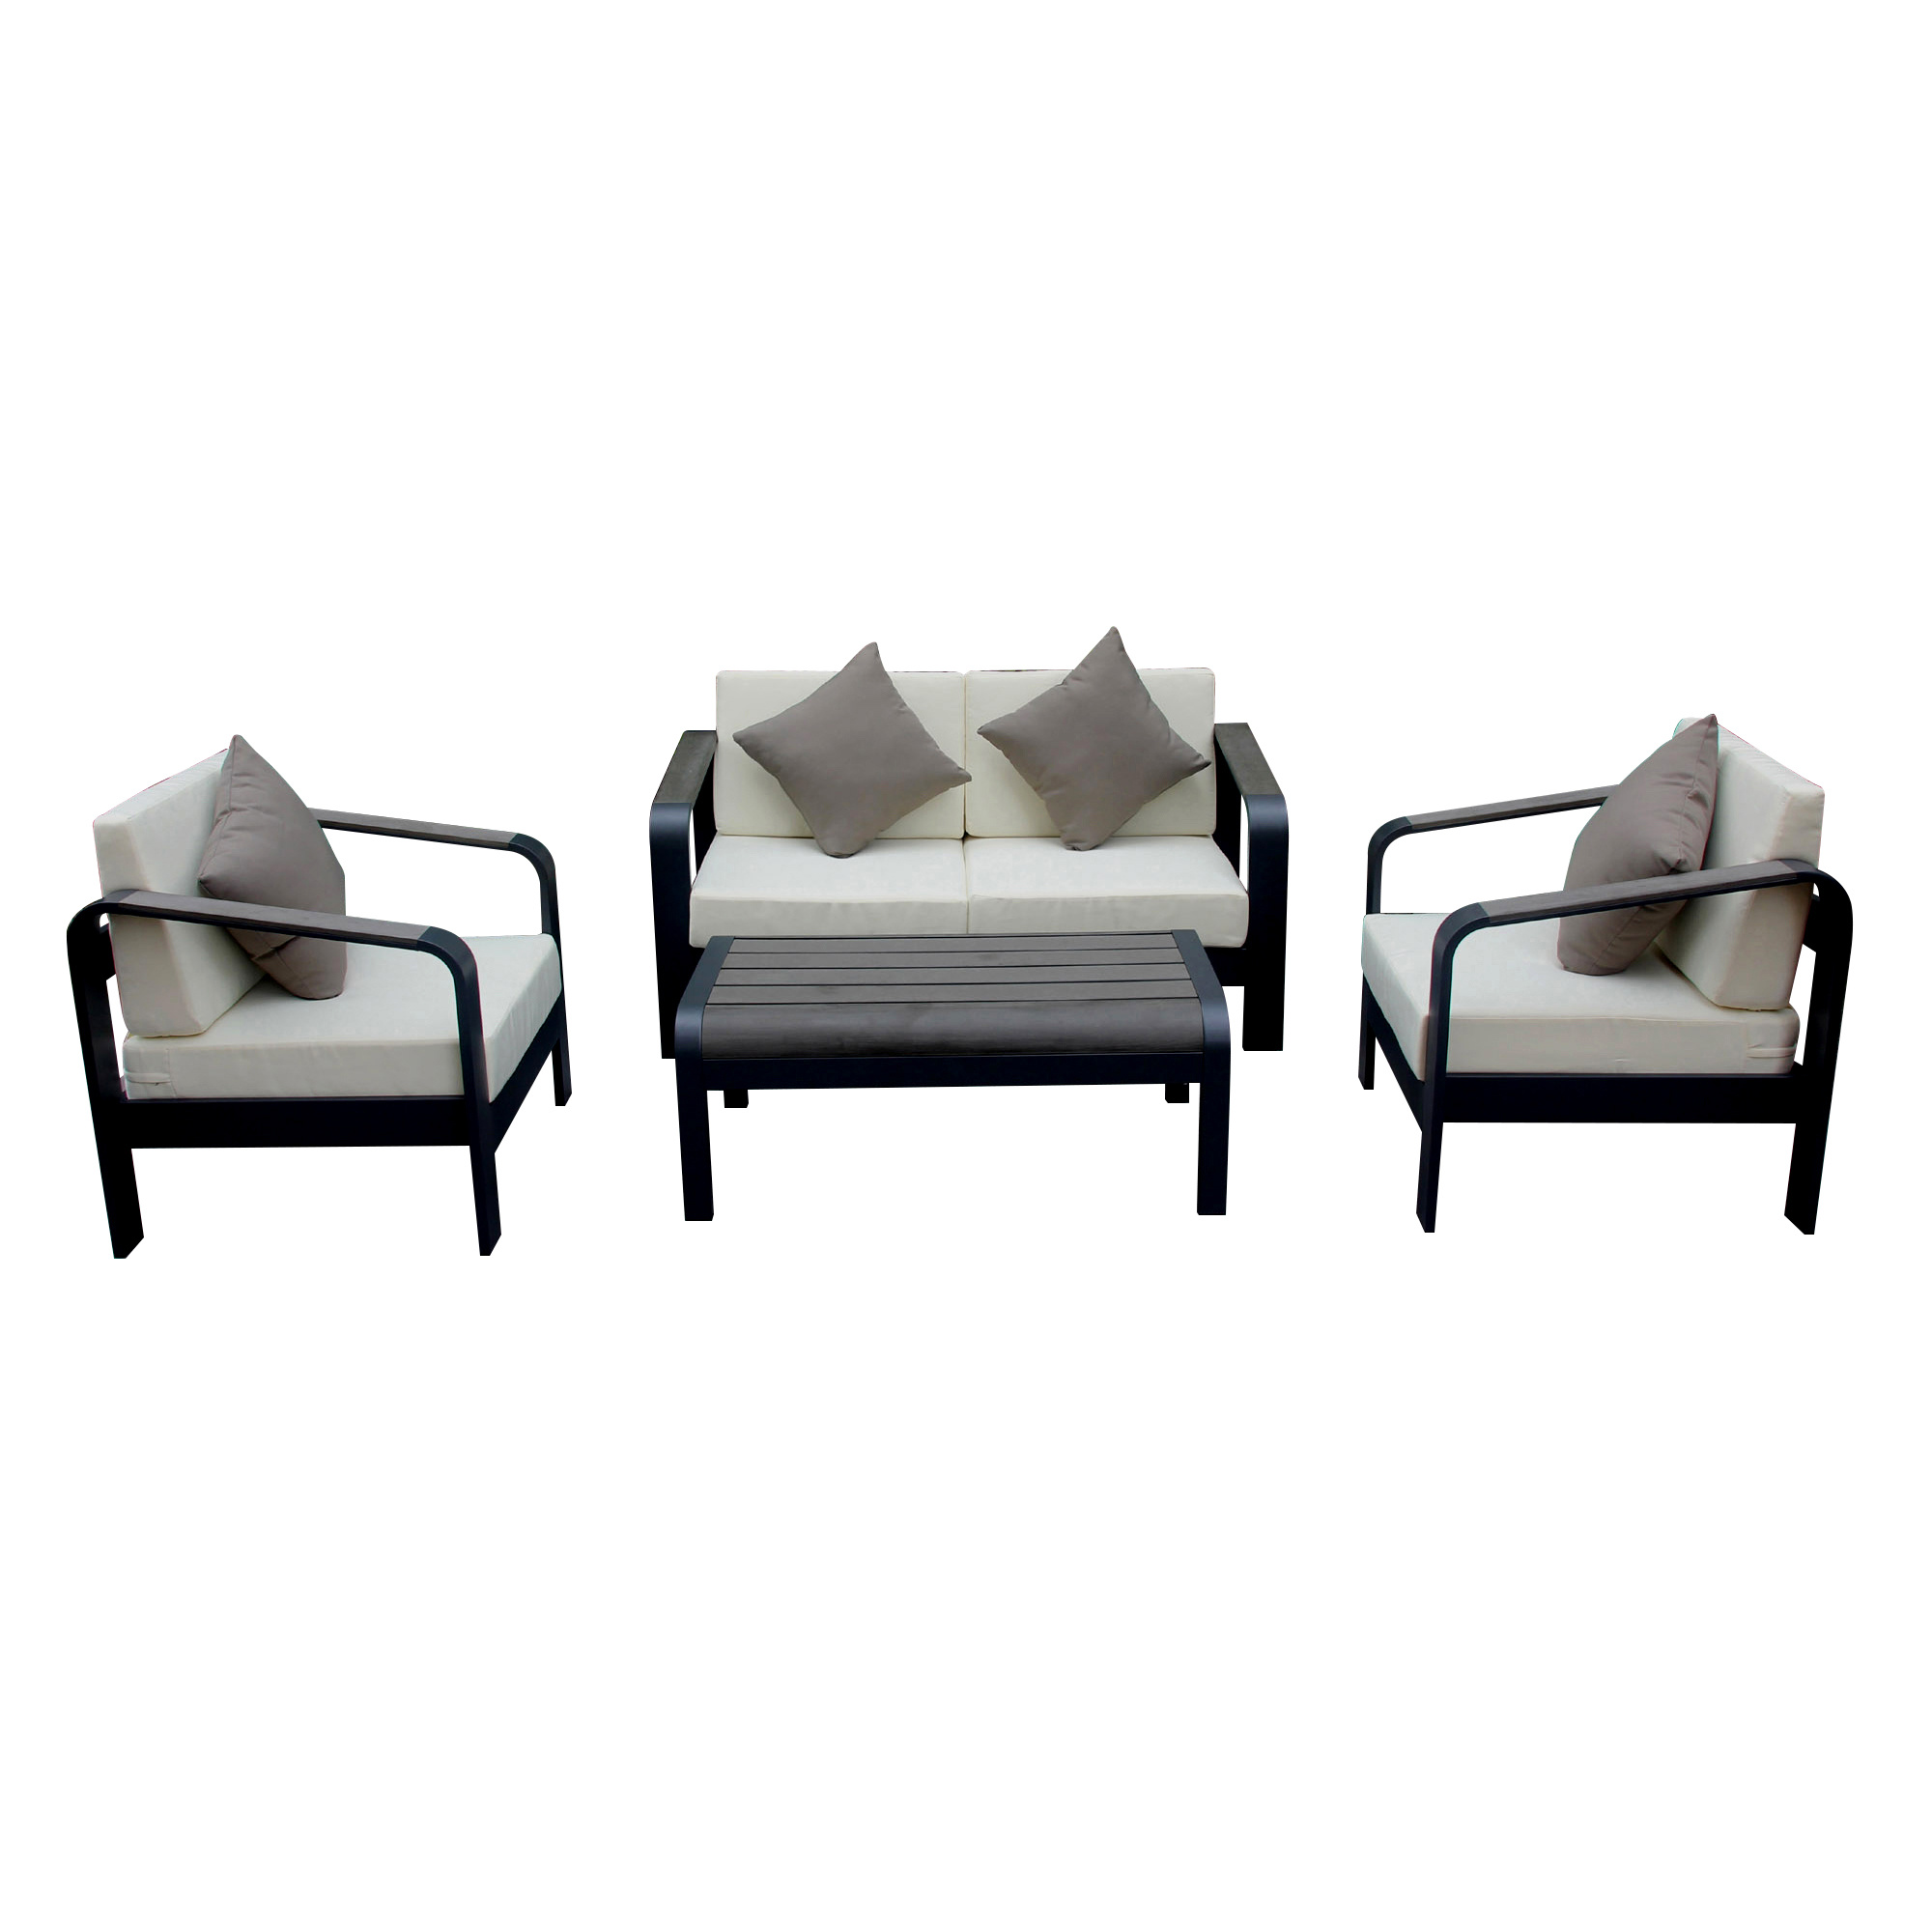 China Outside Living Belt And Road Garden Poly Wood Sofa Set Furniture For Sale China Garden Living Furniture Hotel Furniture